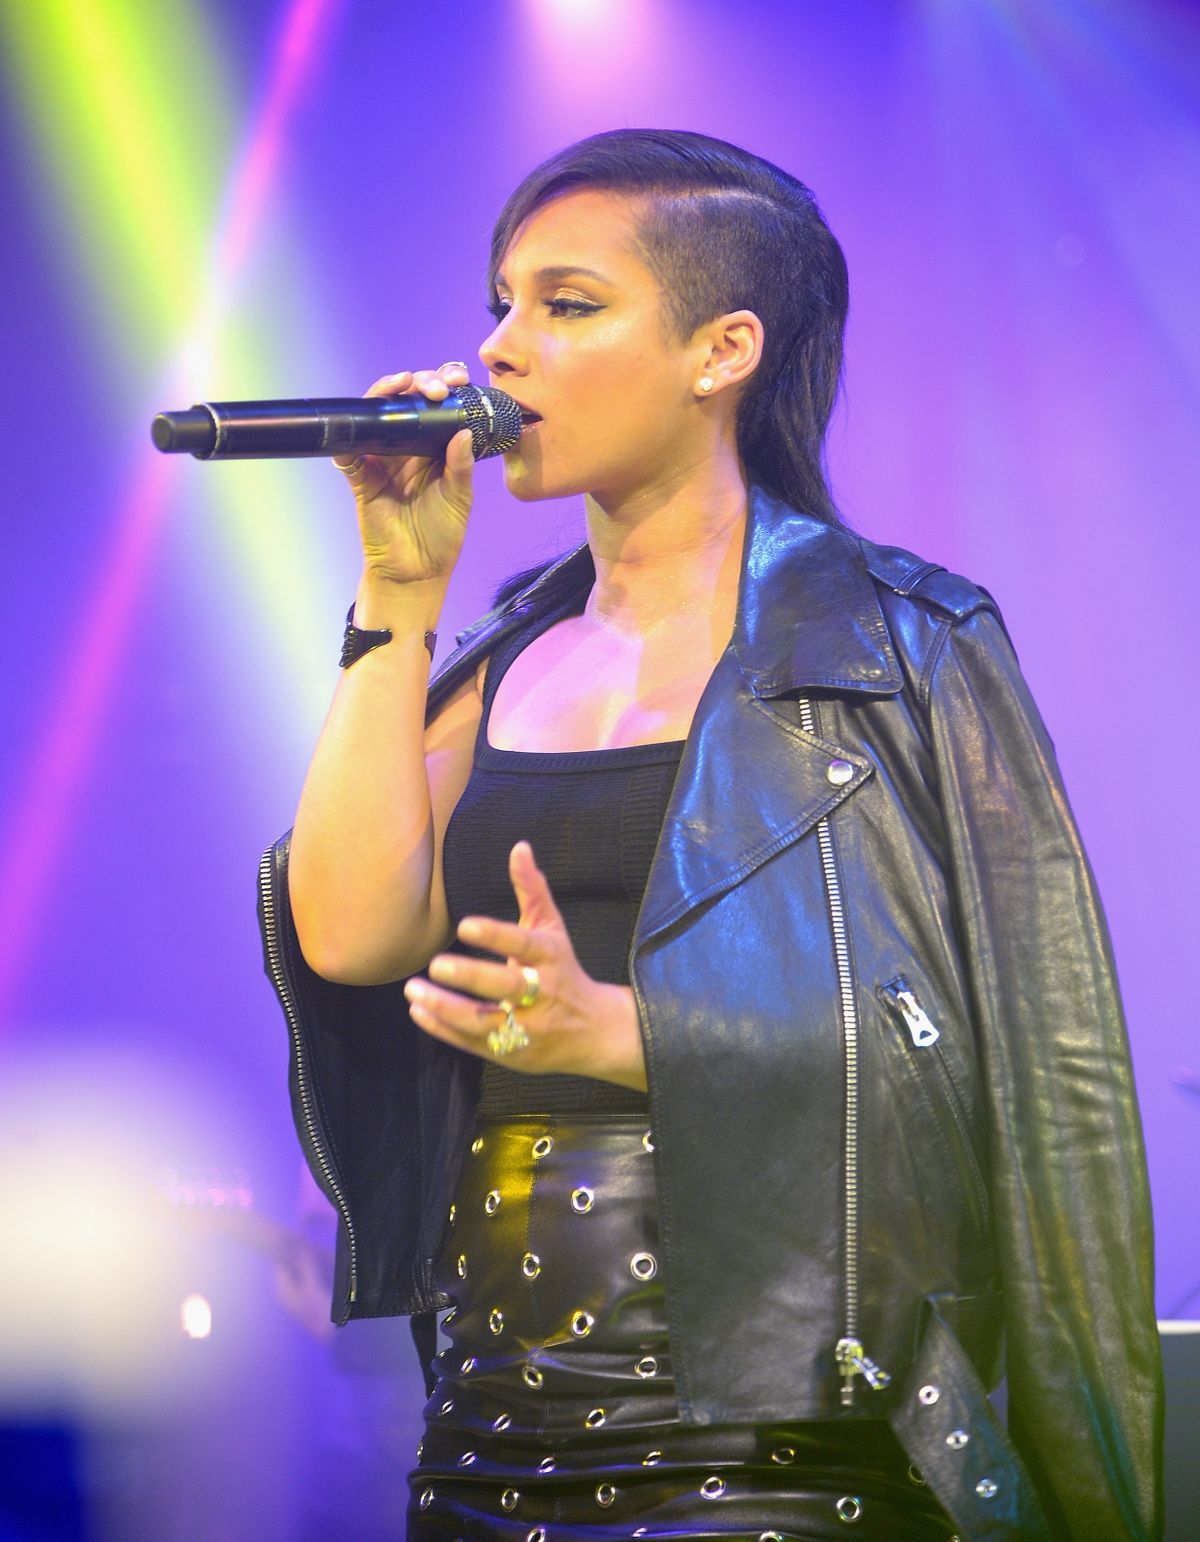 ALICIA KEYS Performs at The Amazing Spider-man 2 After Party